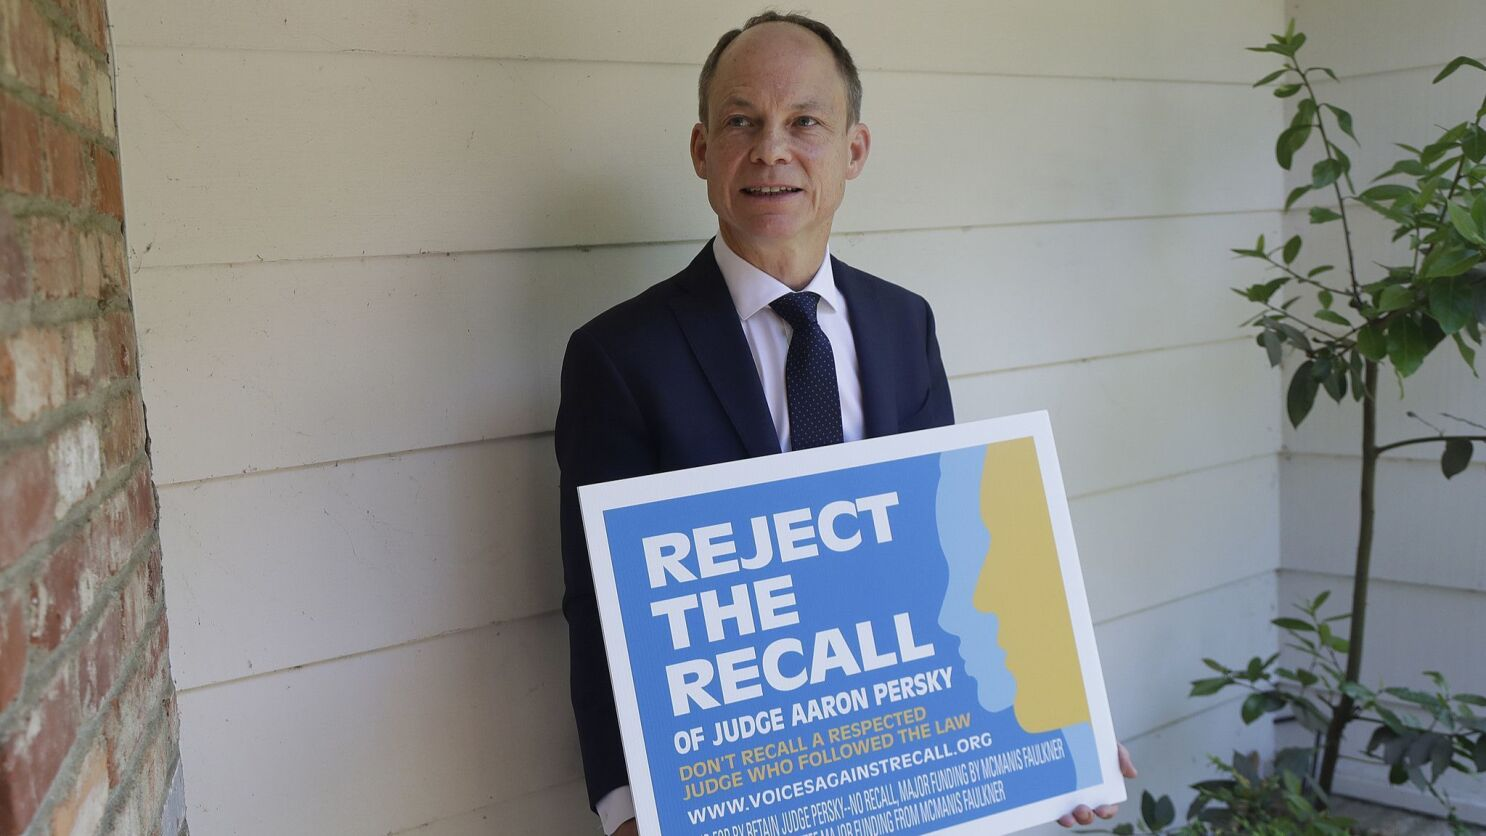 The judge who sentenced Brock Turner to six months in